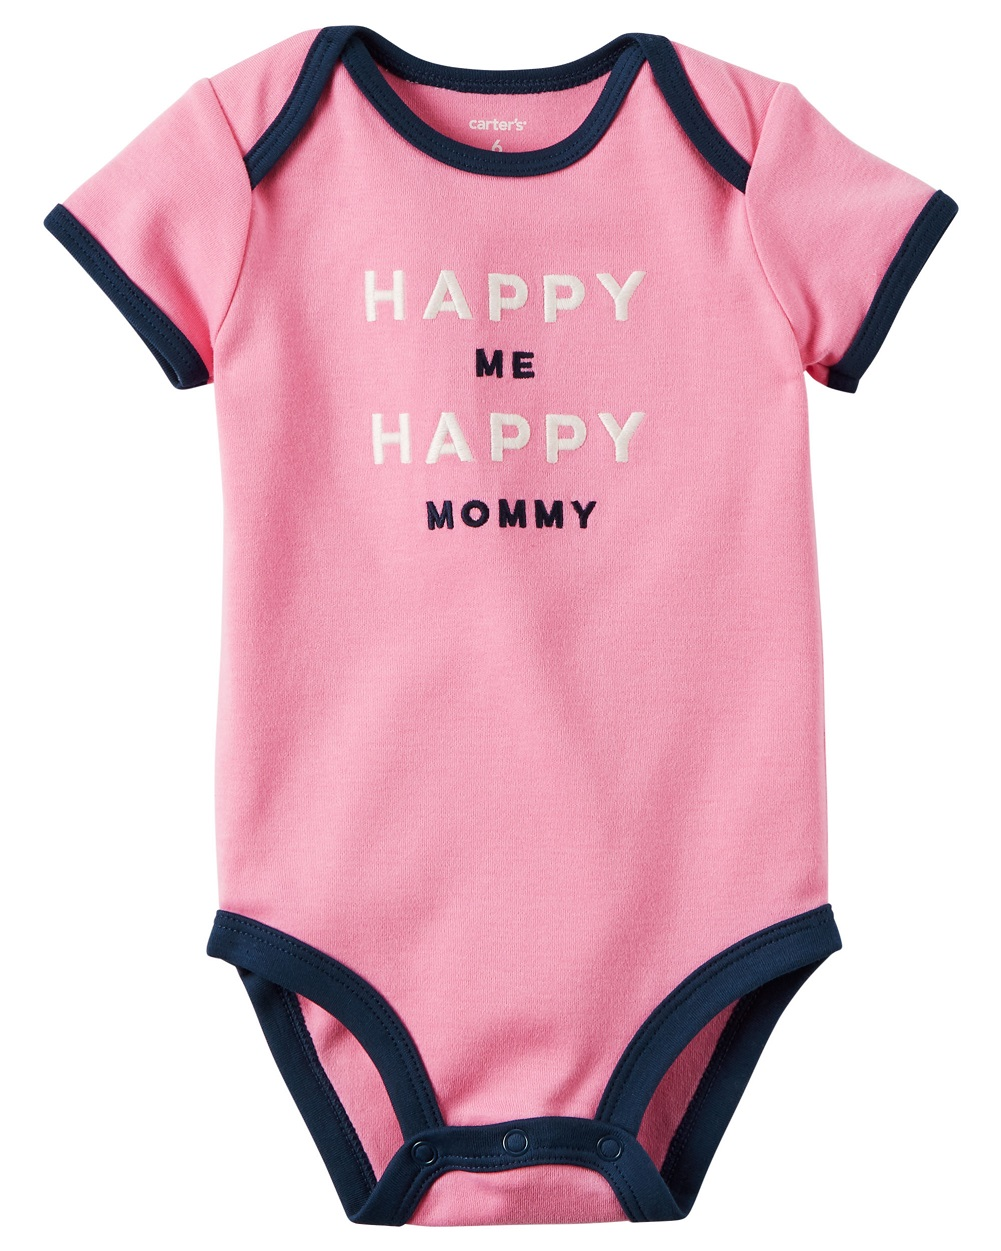 ed0c84d4b Carter's Baby Girls' Happy Mommy Collectible Bodysuit, 18 Months ...